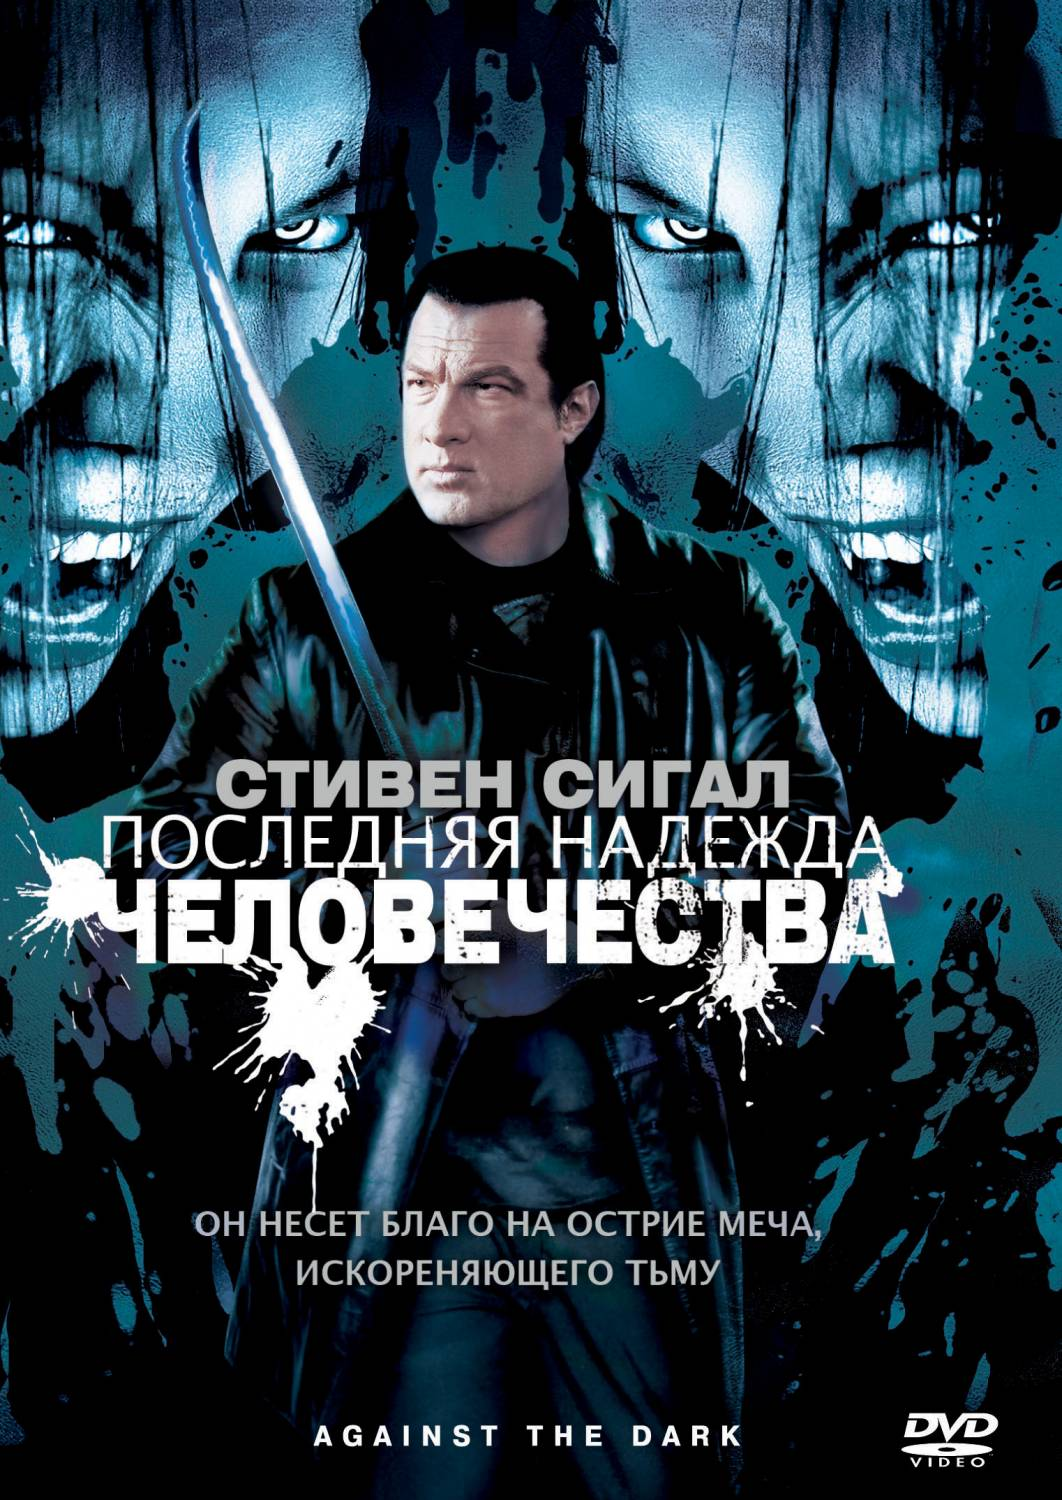 Смотреть кино онлайн Последняя надежда человечества (2009) онлайн/Against the Dark:«He lives by the sword. They will die by it.» Online